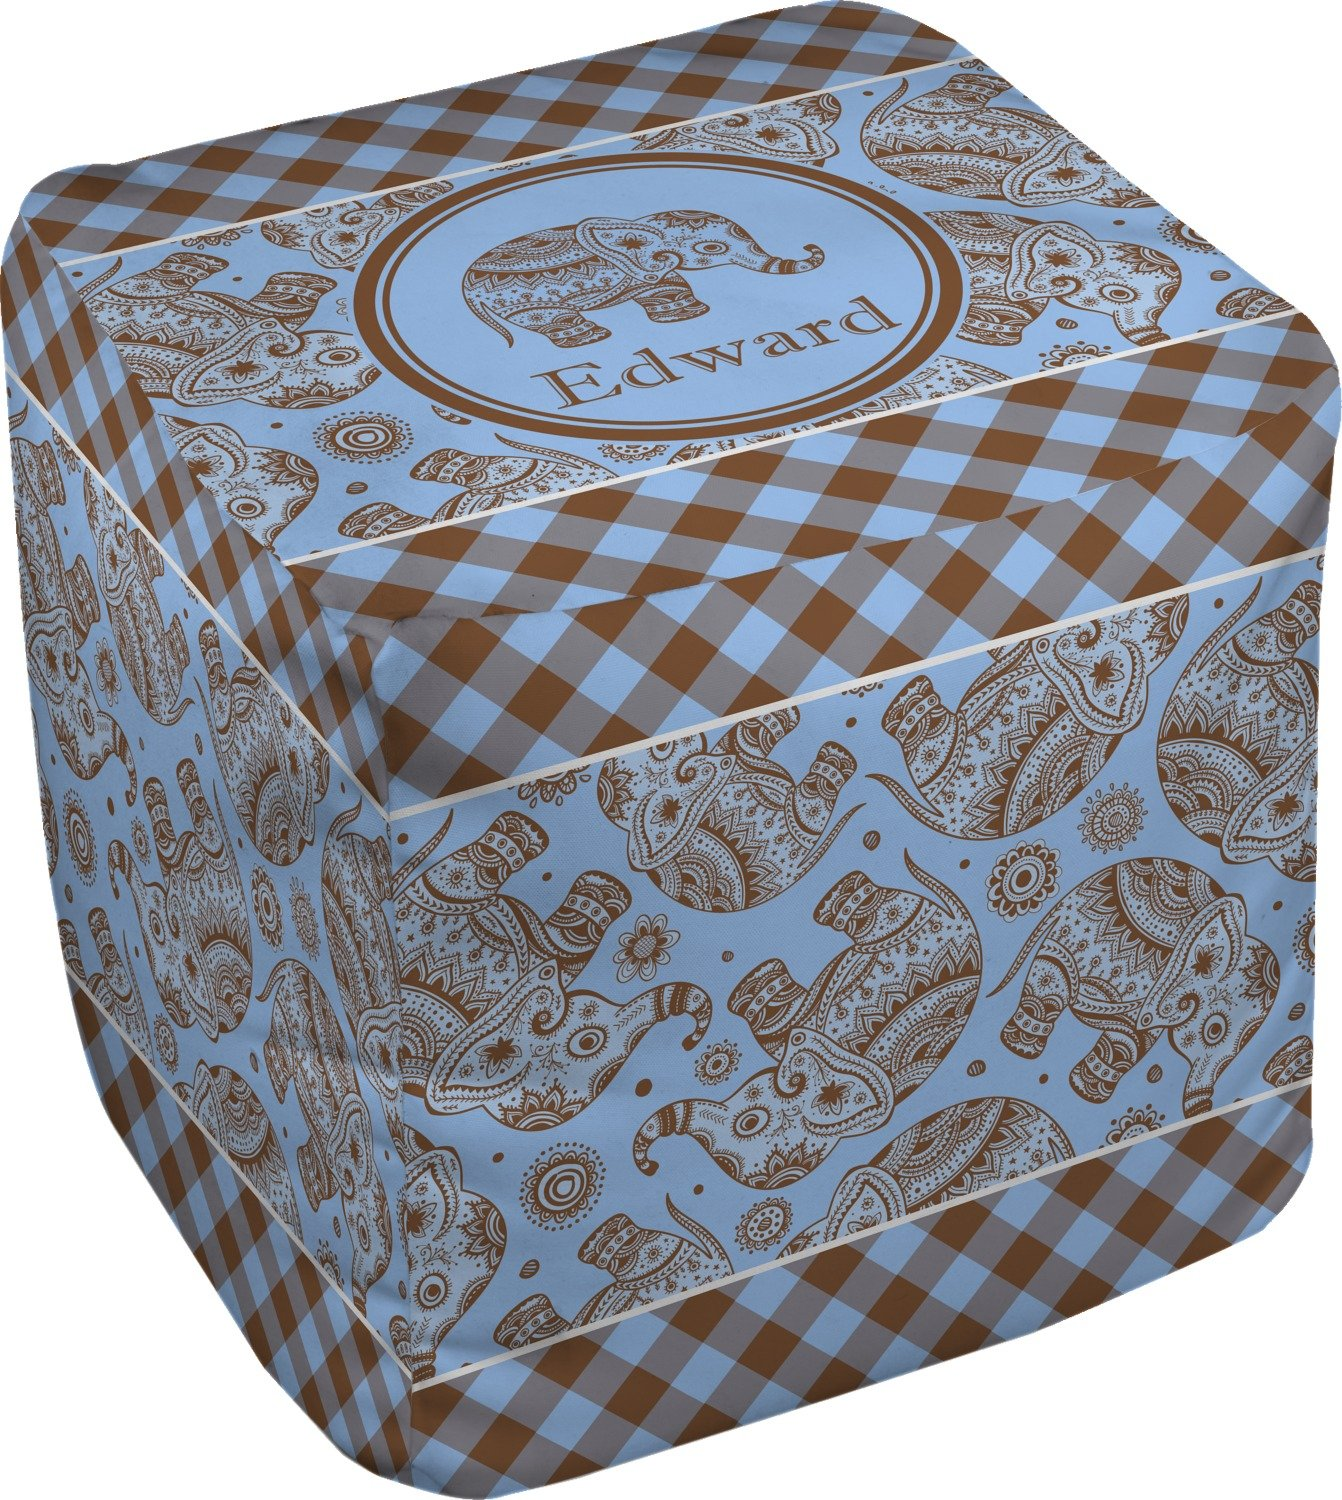 RNK Shops Gingham & Elephants Cube Pouf Ottoman - 13'' (Personalized)